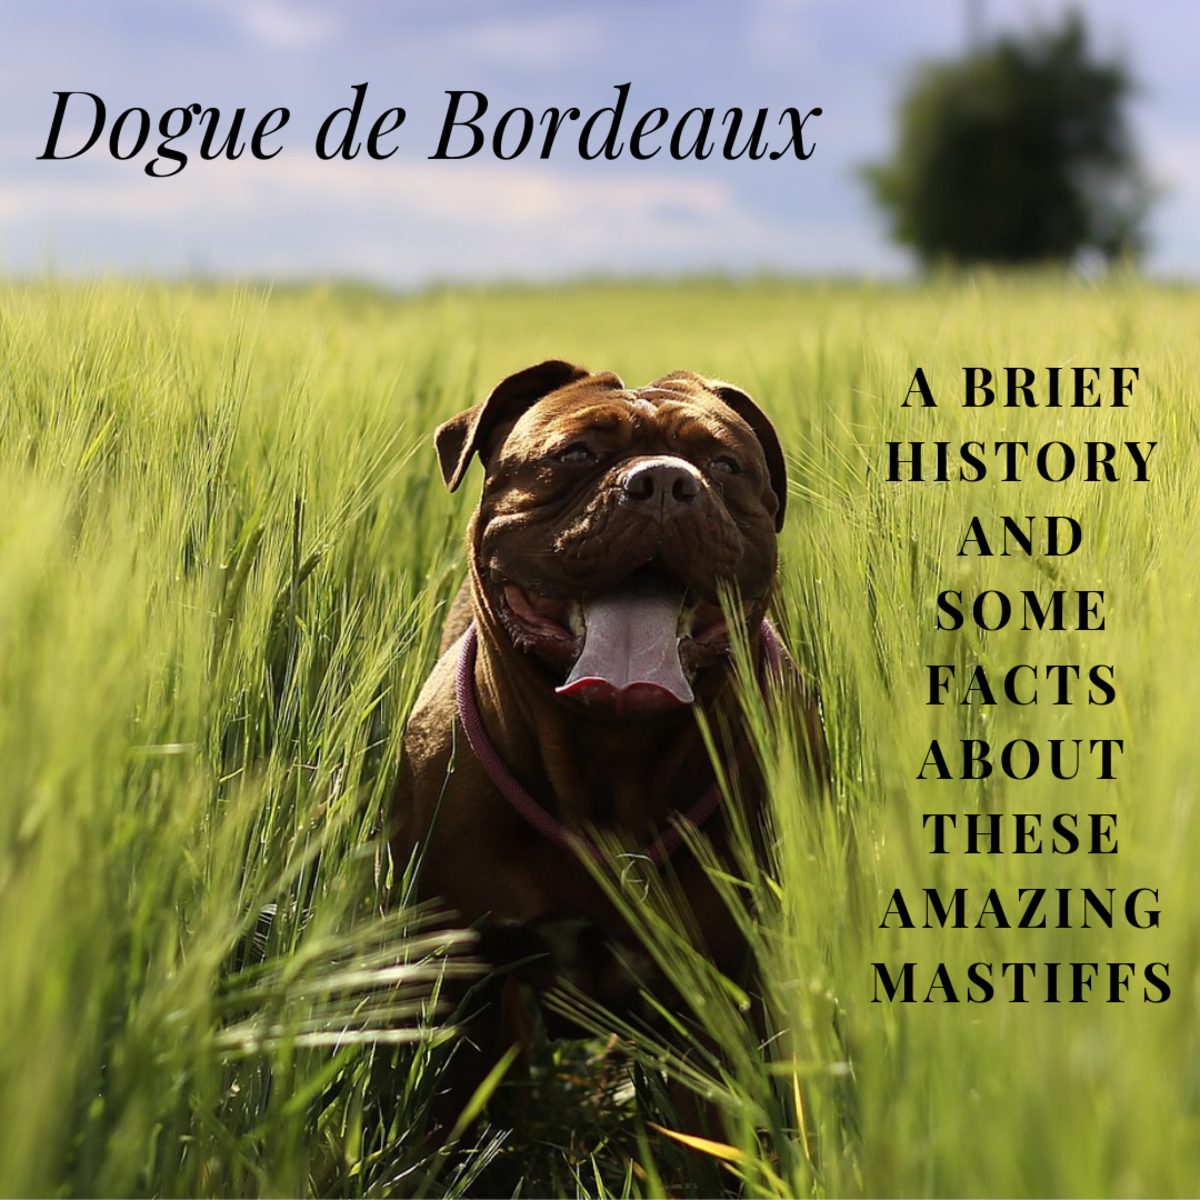 This article will break down a little bit about the history of the Dogue de Bordeaux, as well as share some interesting facts about this wonderful breed.